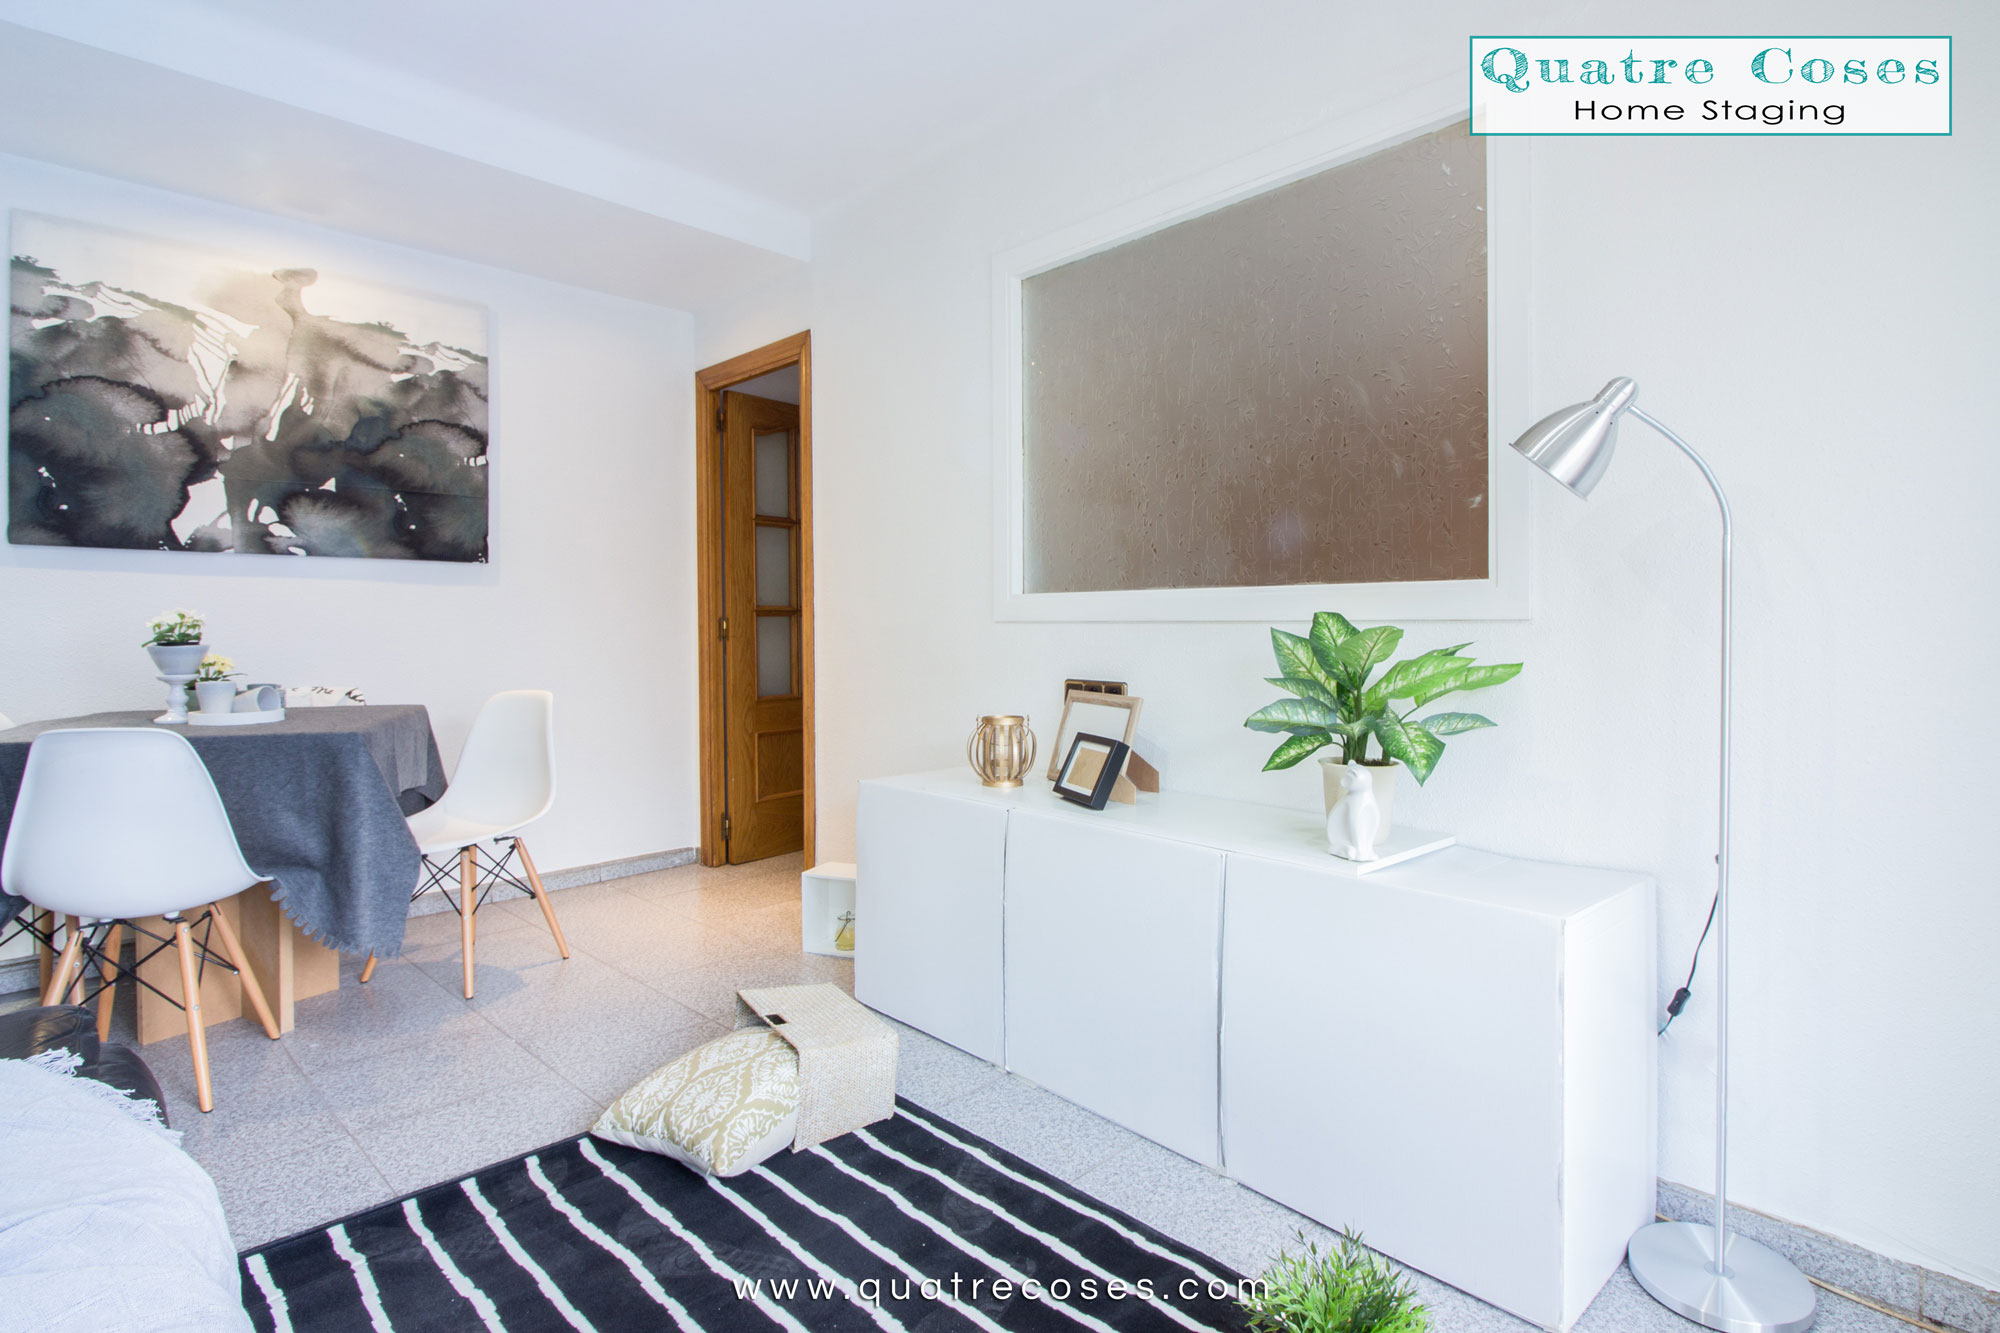 Home Staging Salon Quatre Coses Home Staging En Martorell